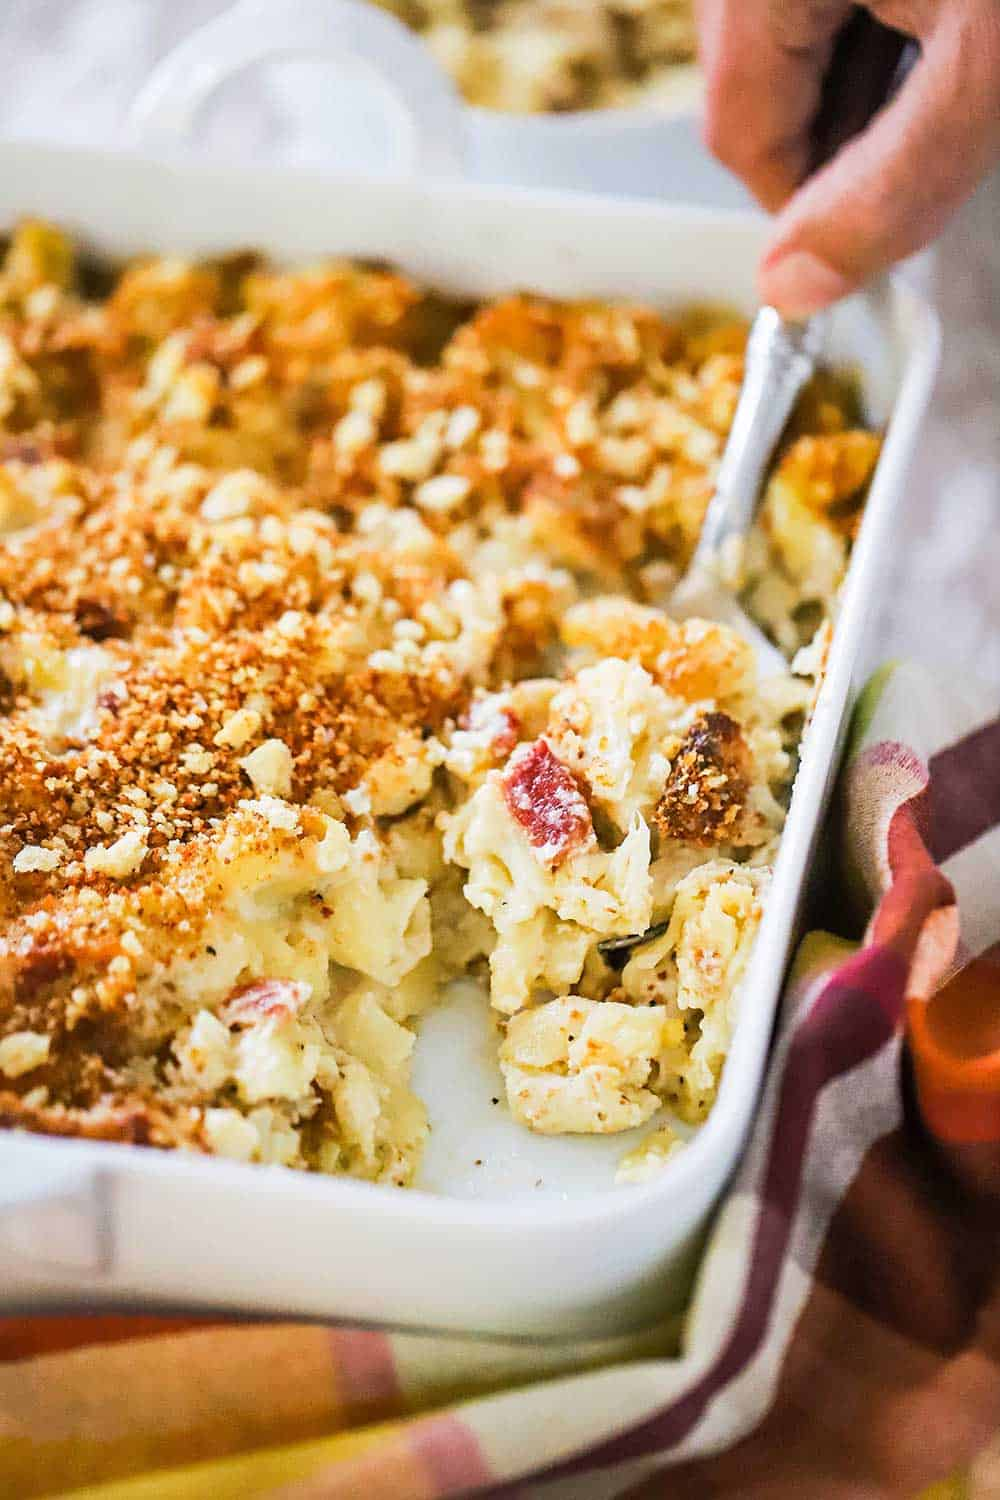 A person using a spoon to scoop out a helping of macaroni and cheese with cauliflower and bacon out of a white square baking dish.